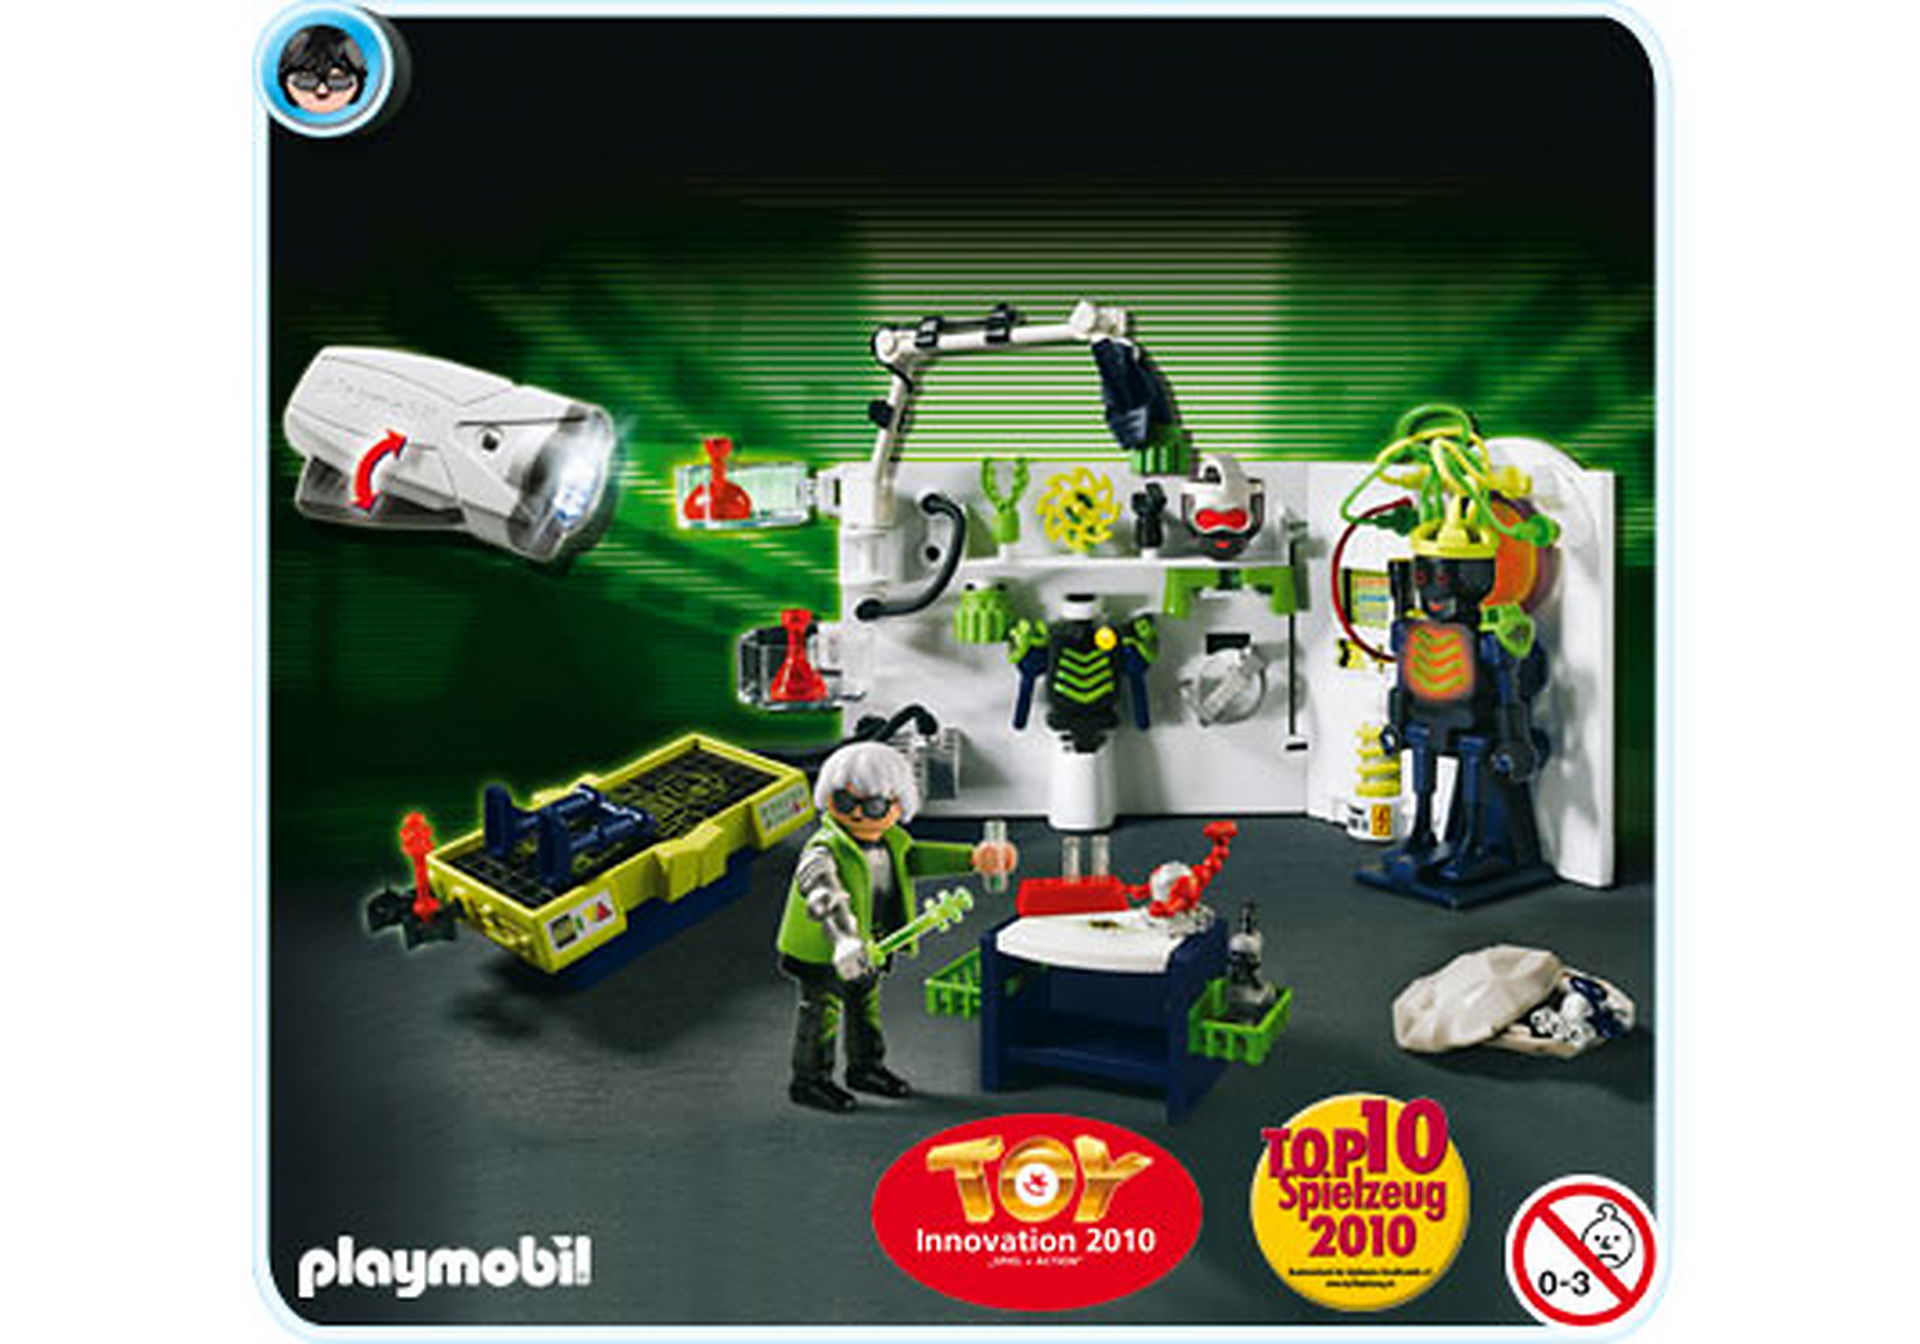 http://media.playmobil.com/i/playmobil/4880-A_product_detail/Robo-Gangster Labor mit Multifunktionstaschenlampe